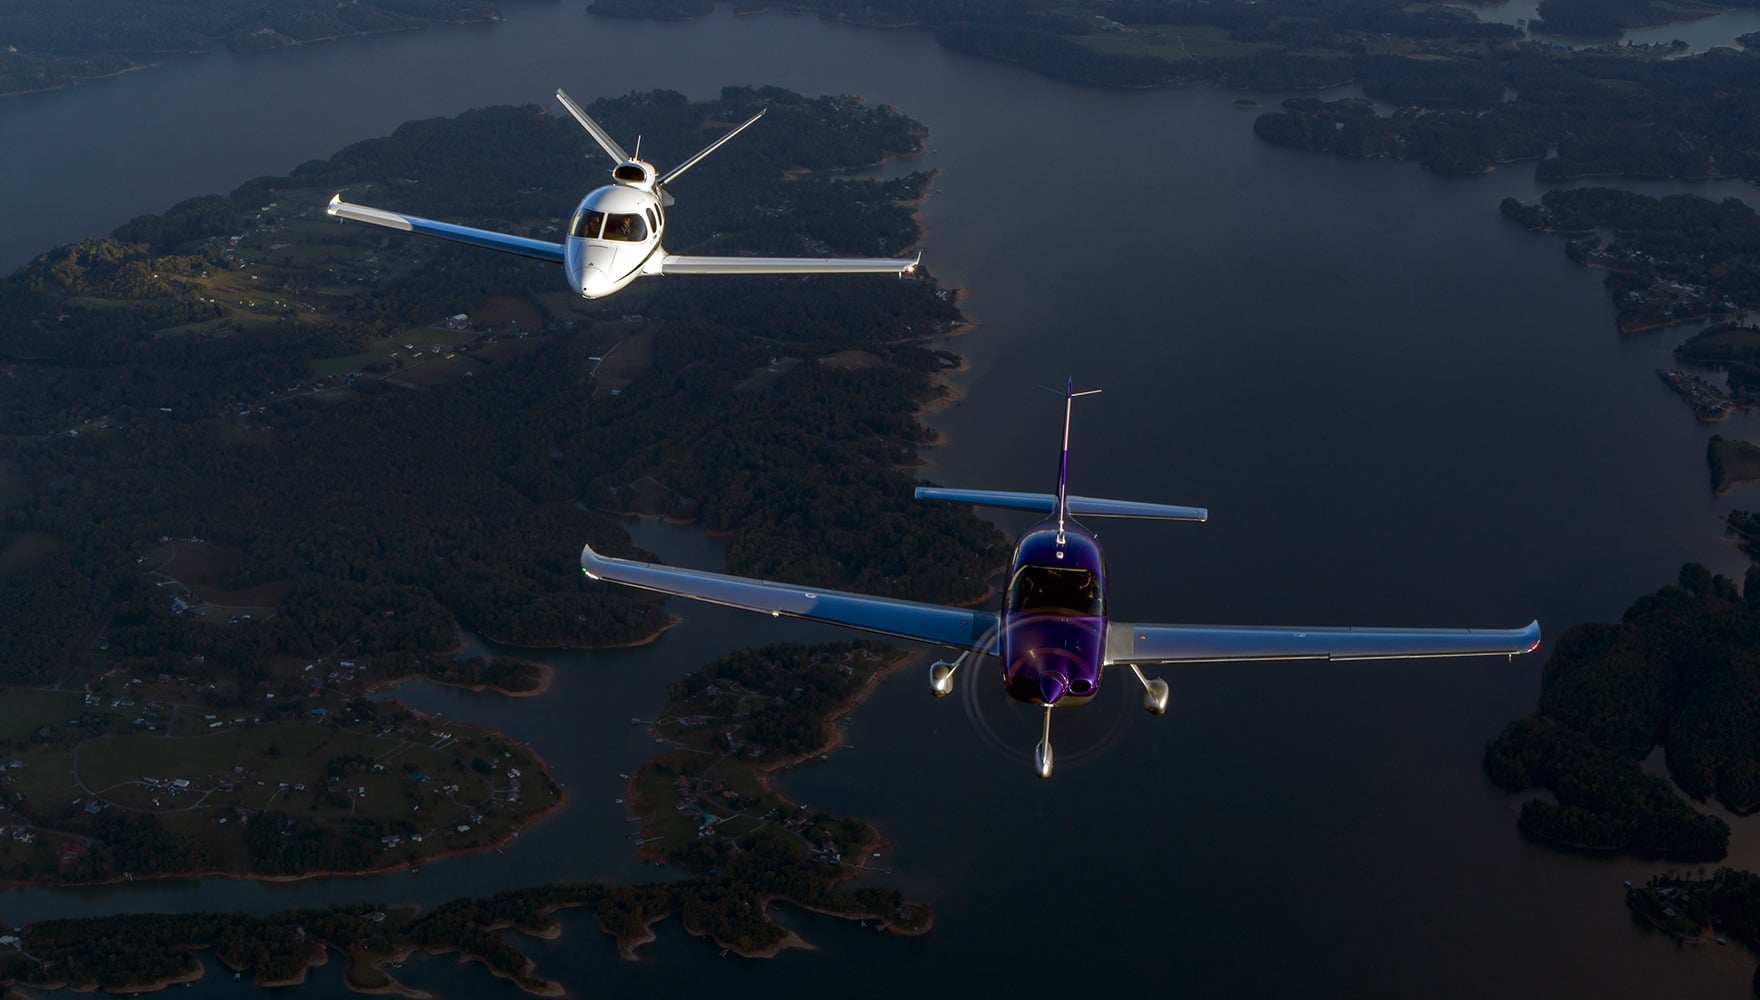 Cirrus Aircraft Delivers Strong 2020 Performance – Holding Top Positions in High-Performance Piston and Jet Aircraft Markets